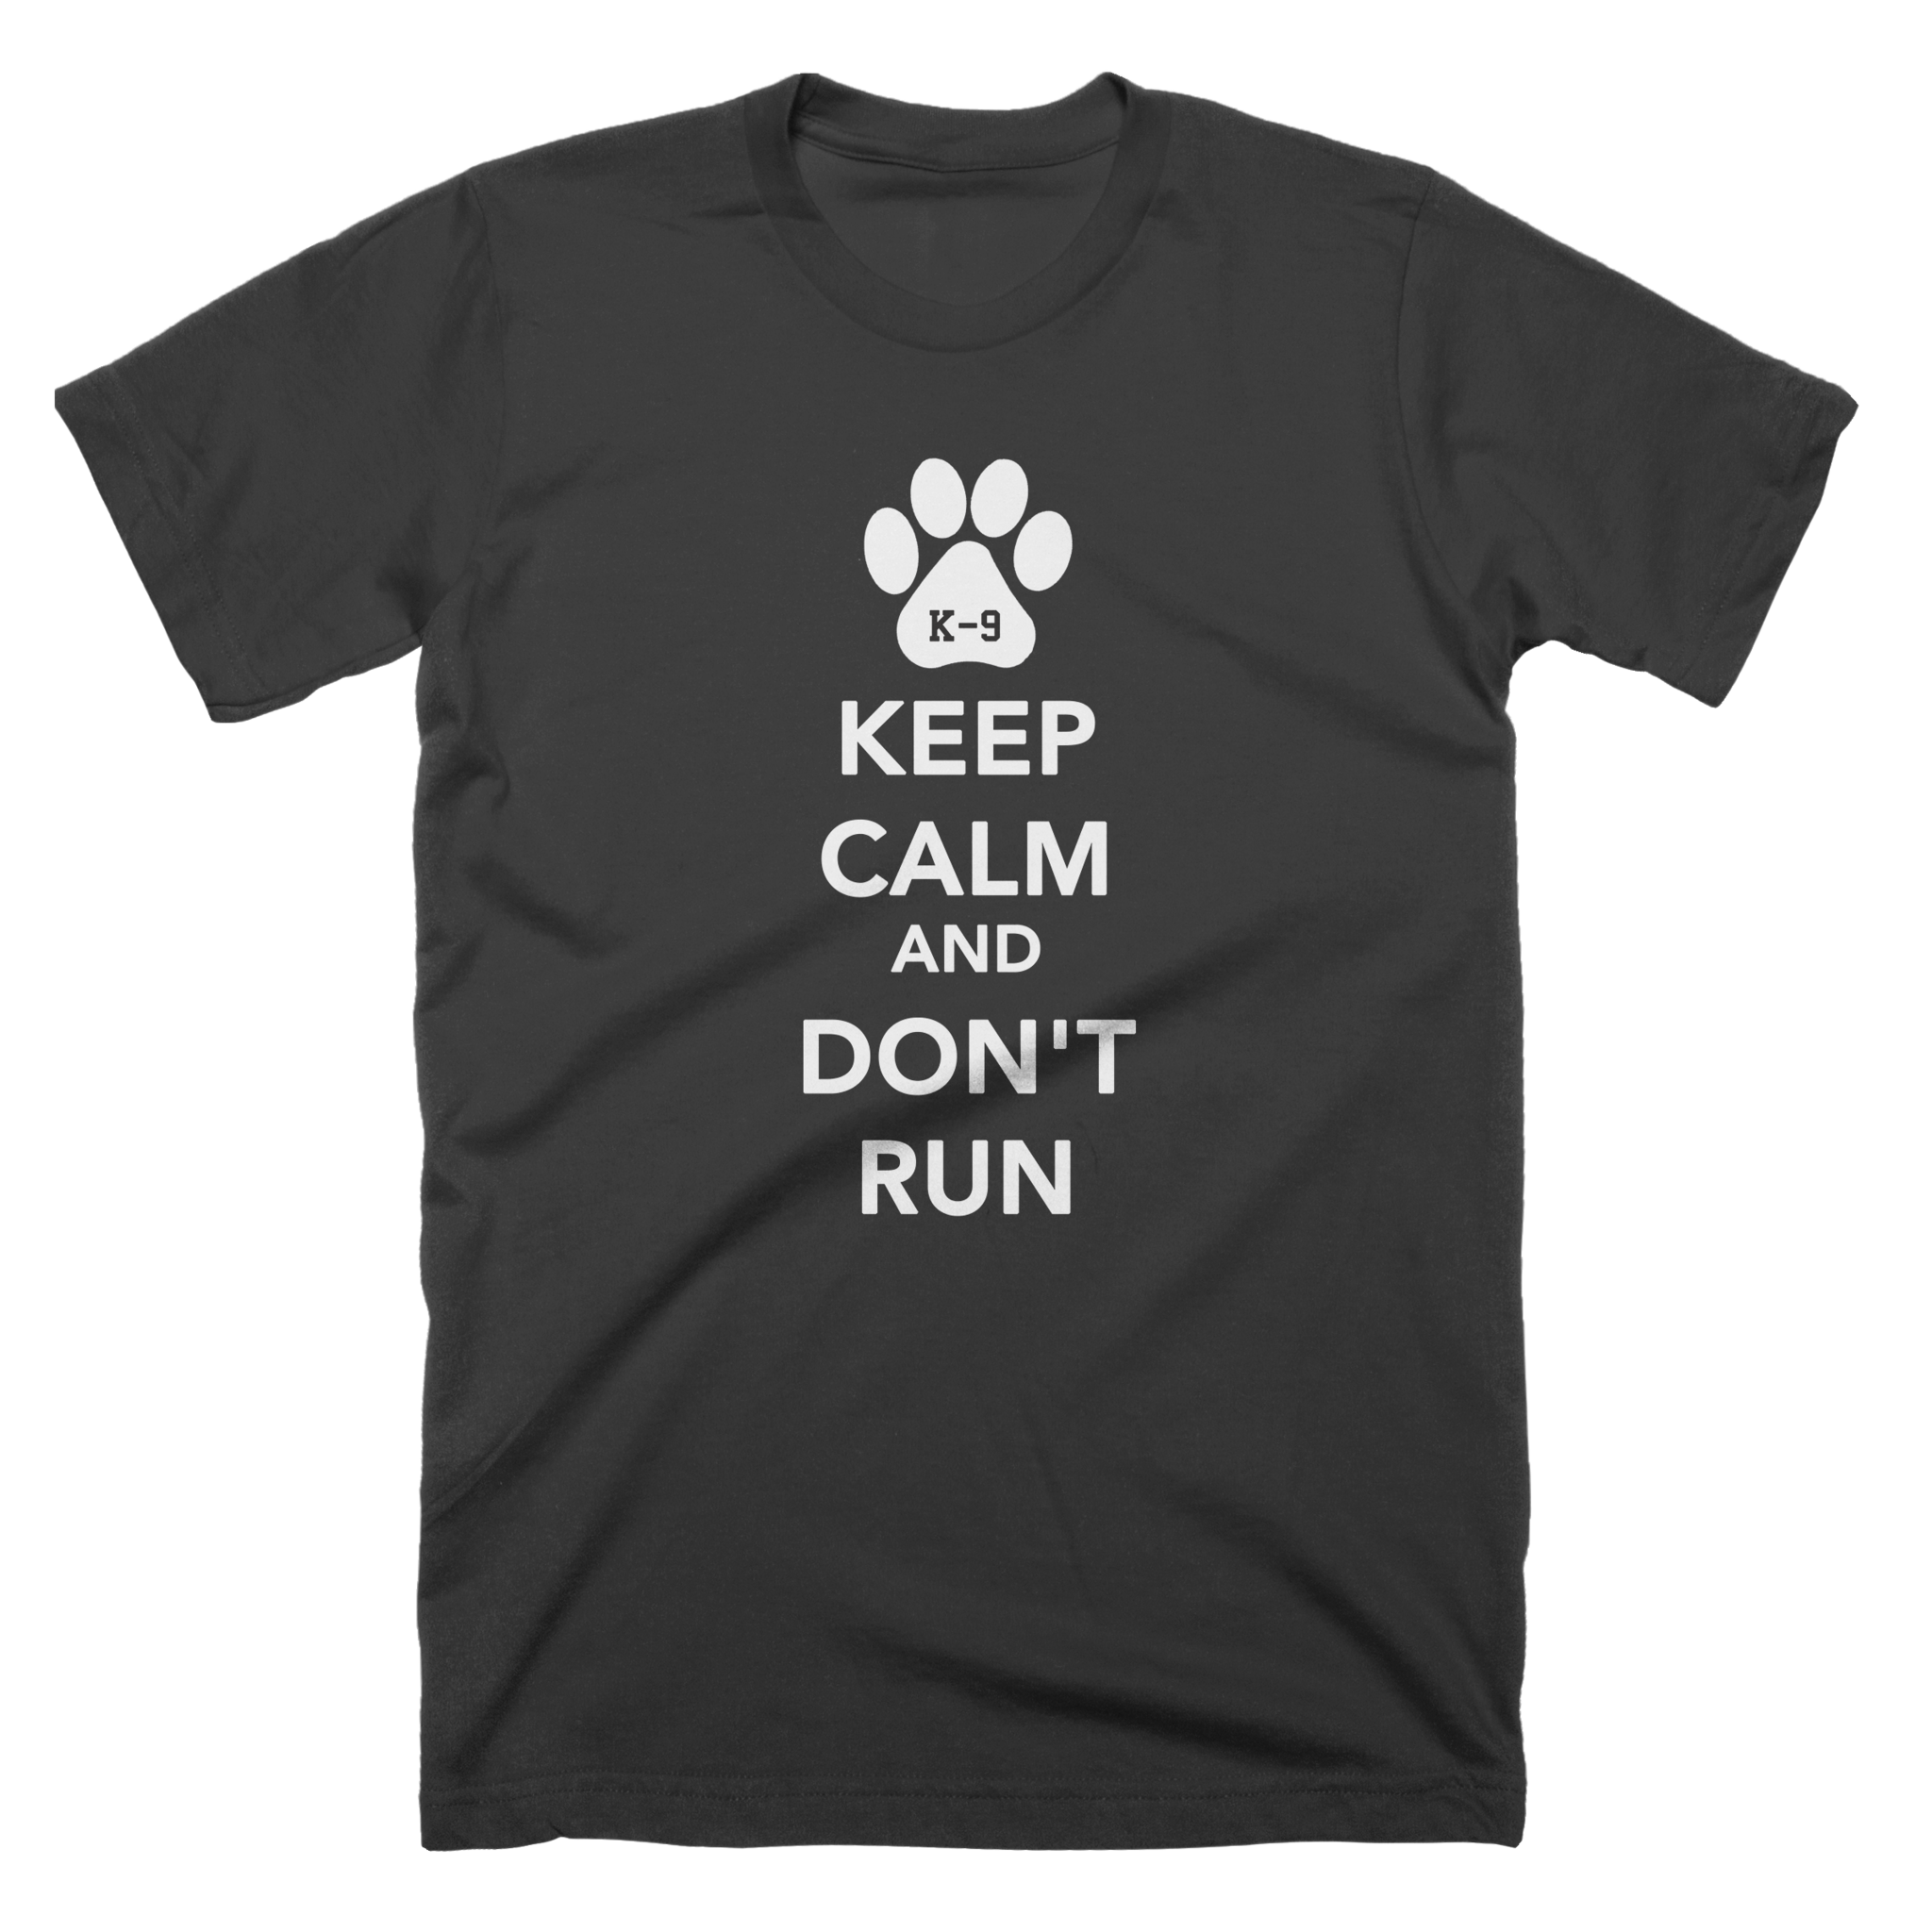 K9 Keep Calm and Don't Run